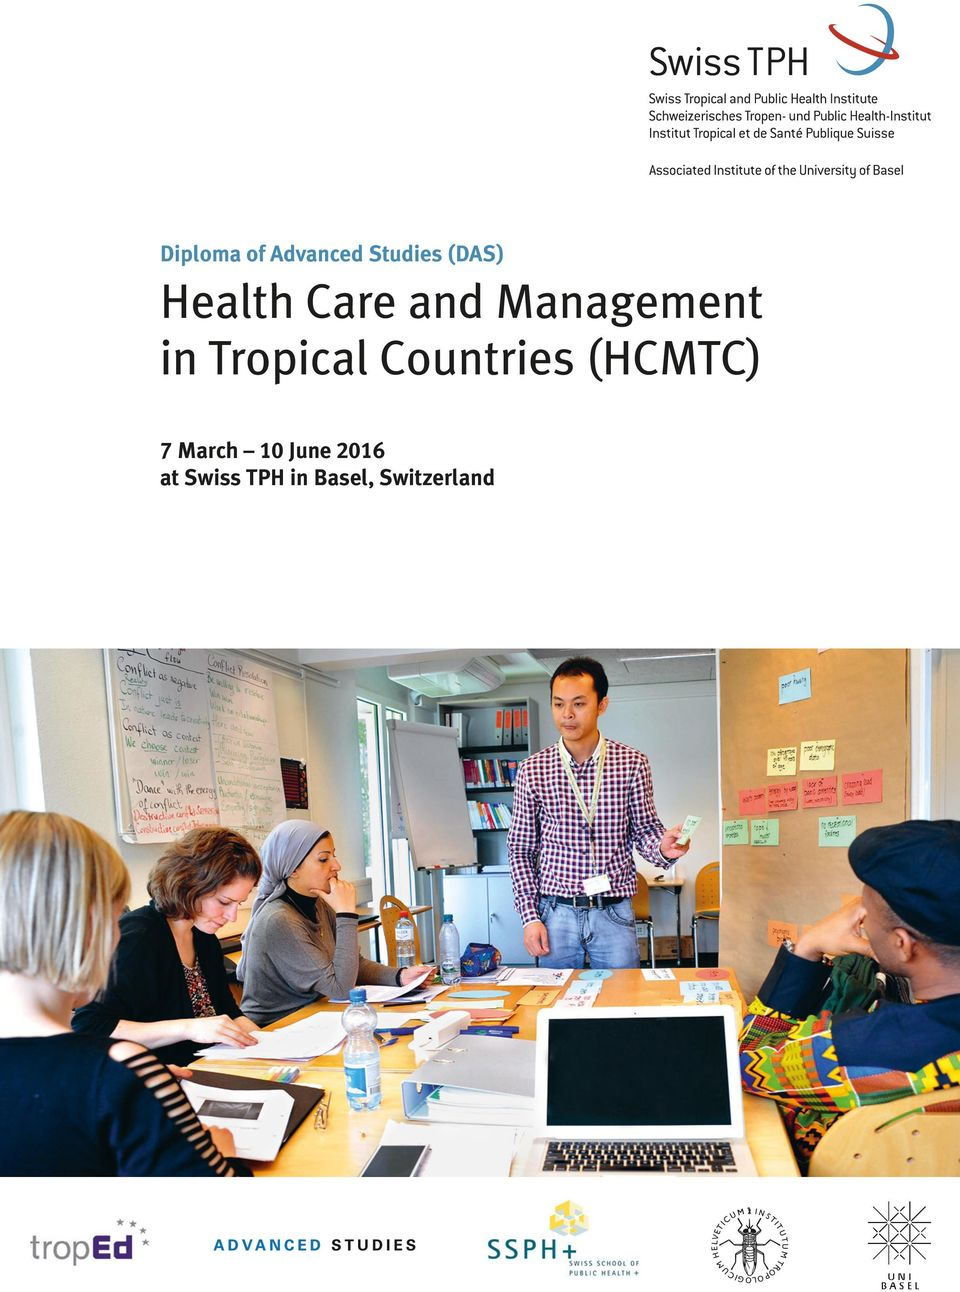 Tropical Countries (HCMTC) 7 March